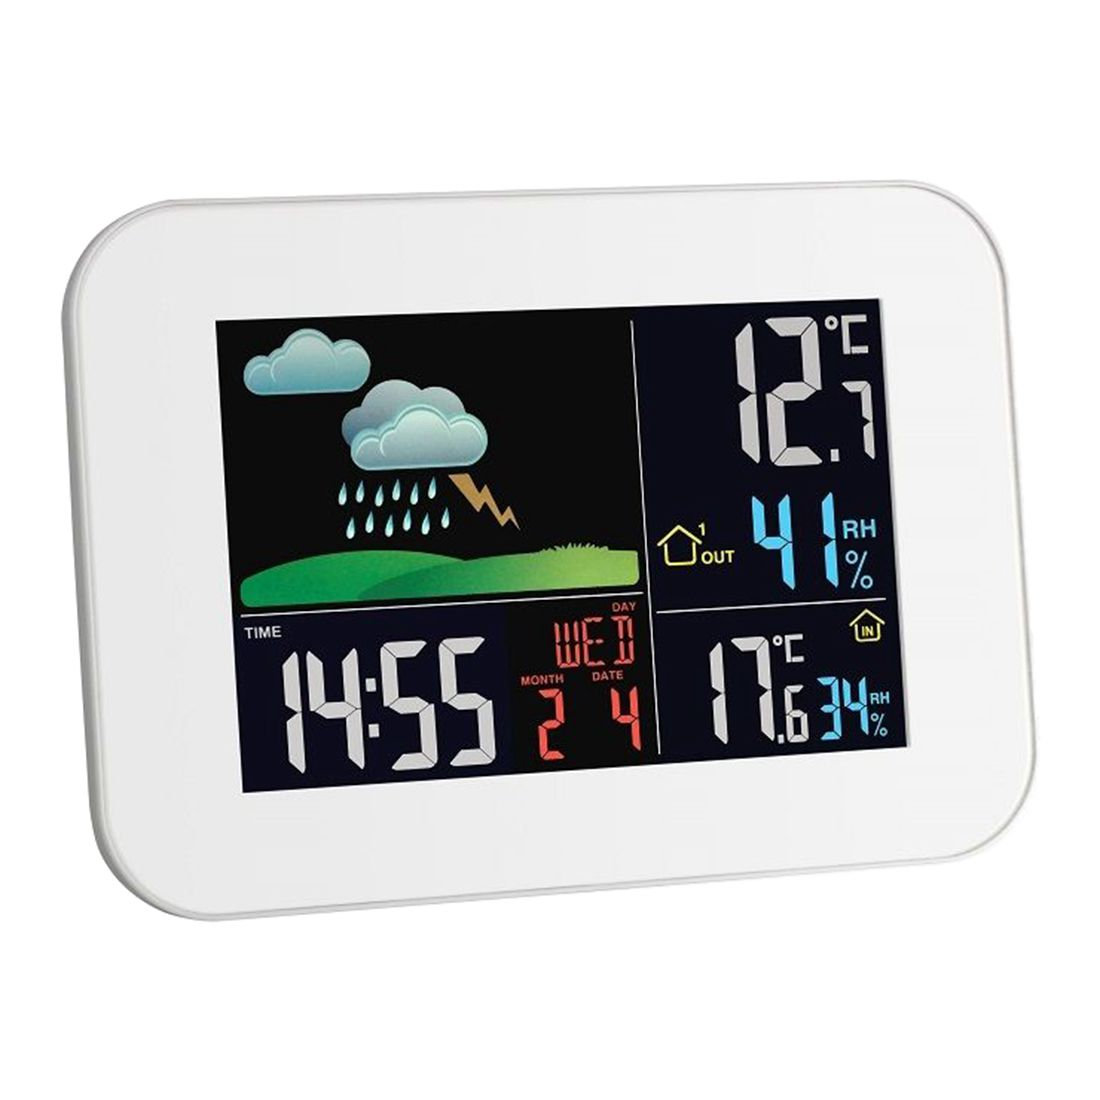 Wireless weather station Weather forecast Thermometer Hygrometer Indoor climate,white wireless weather station indoor hygrometer indoor